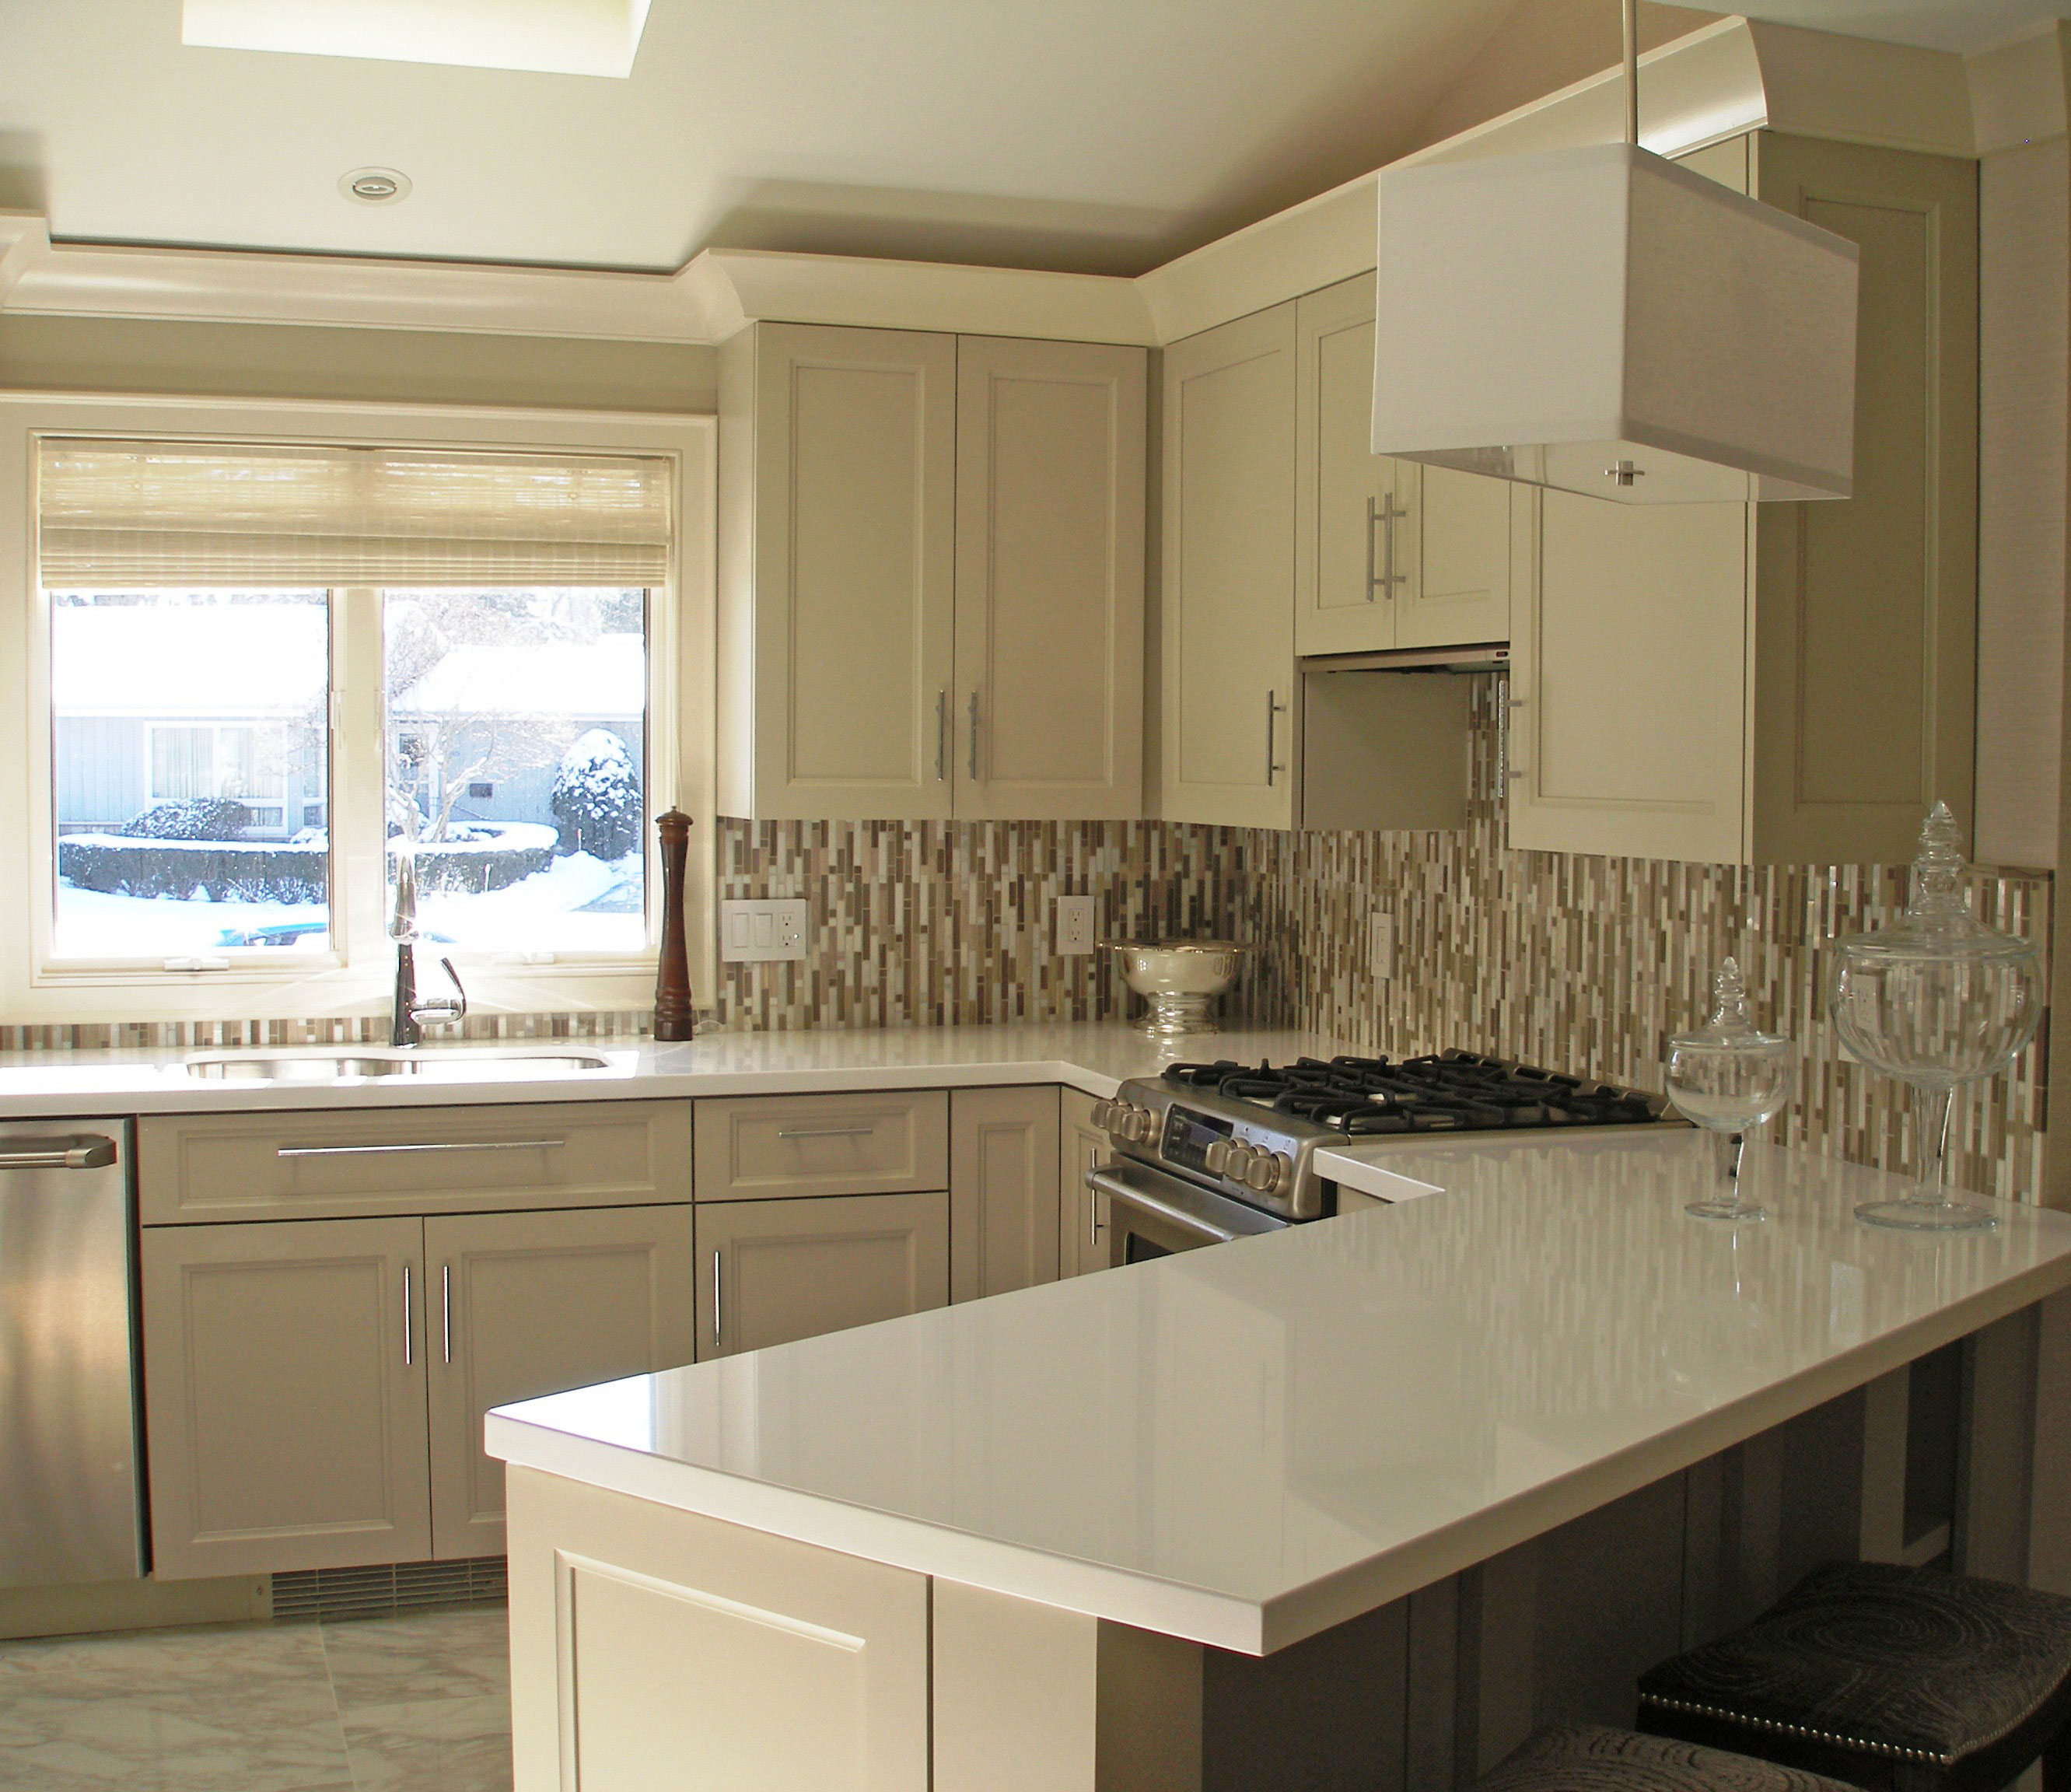 Kitchen Decor Ends: Small Kitchen Design Is Big On Style